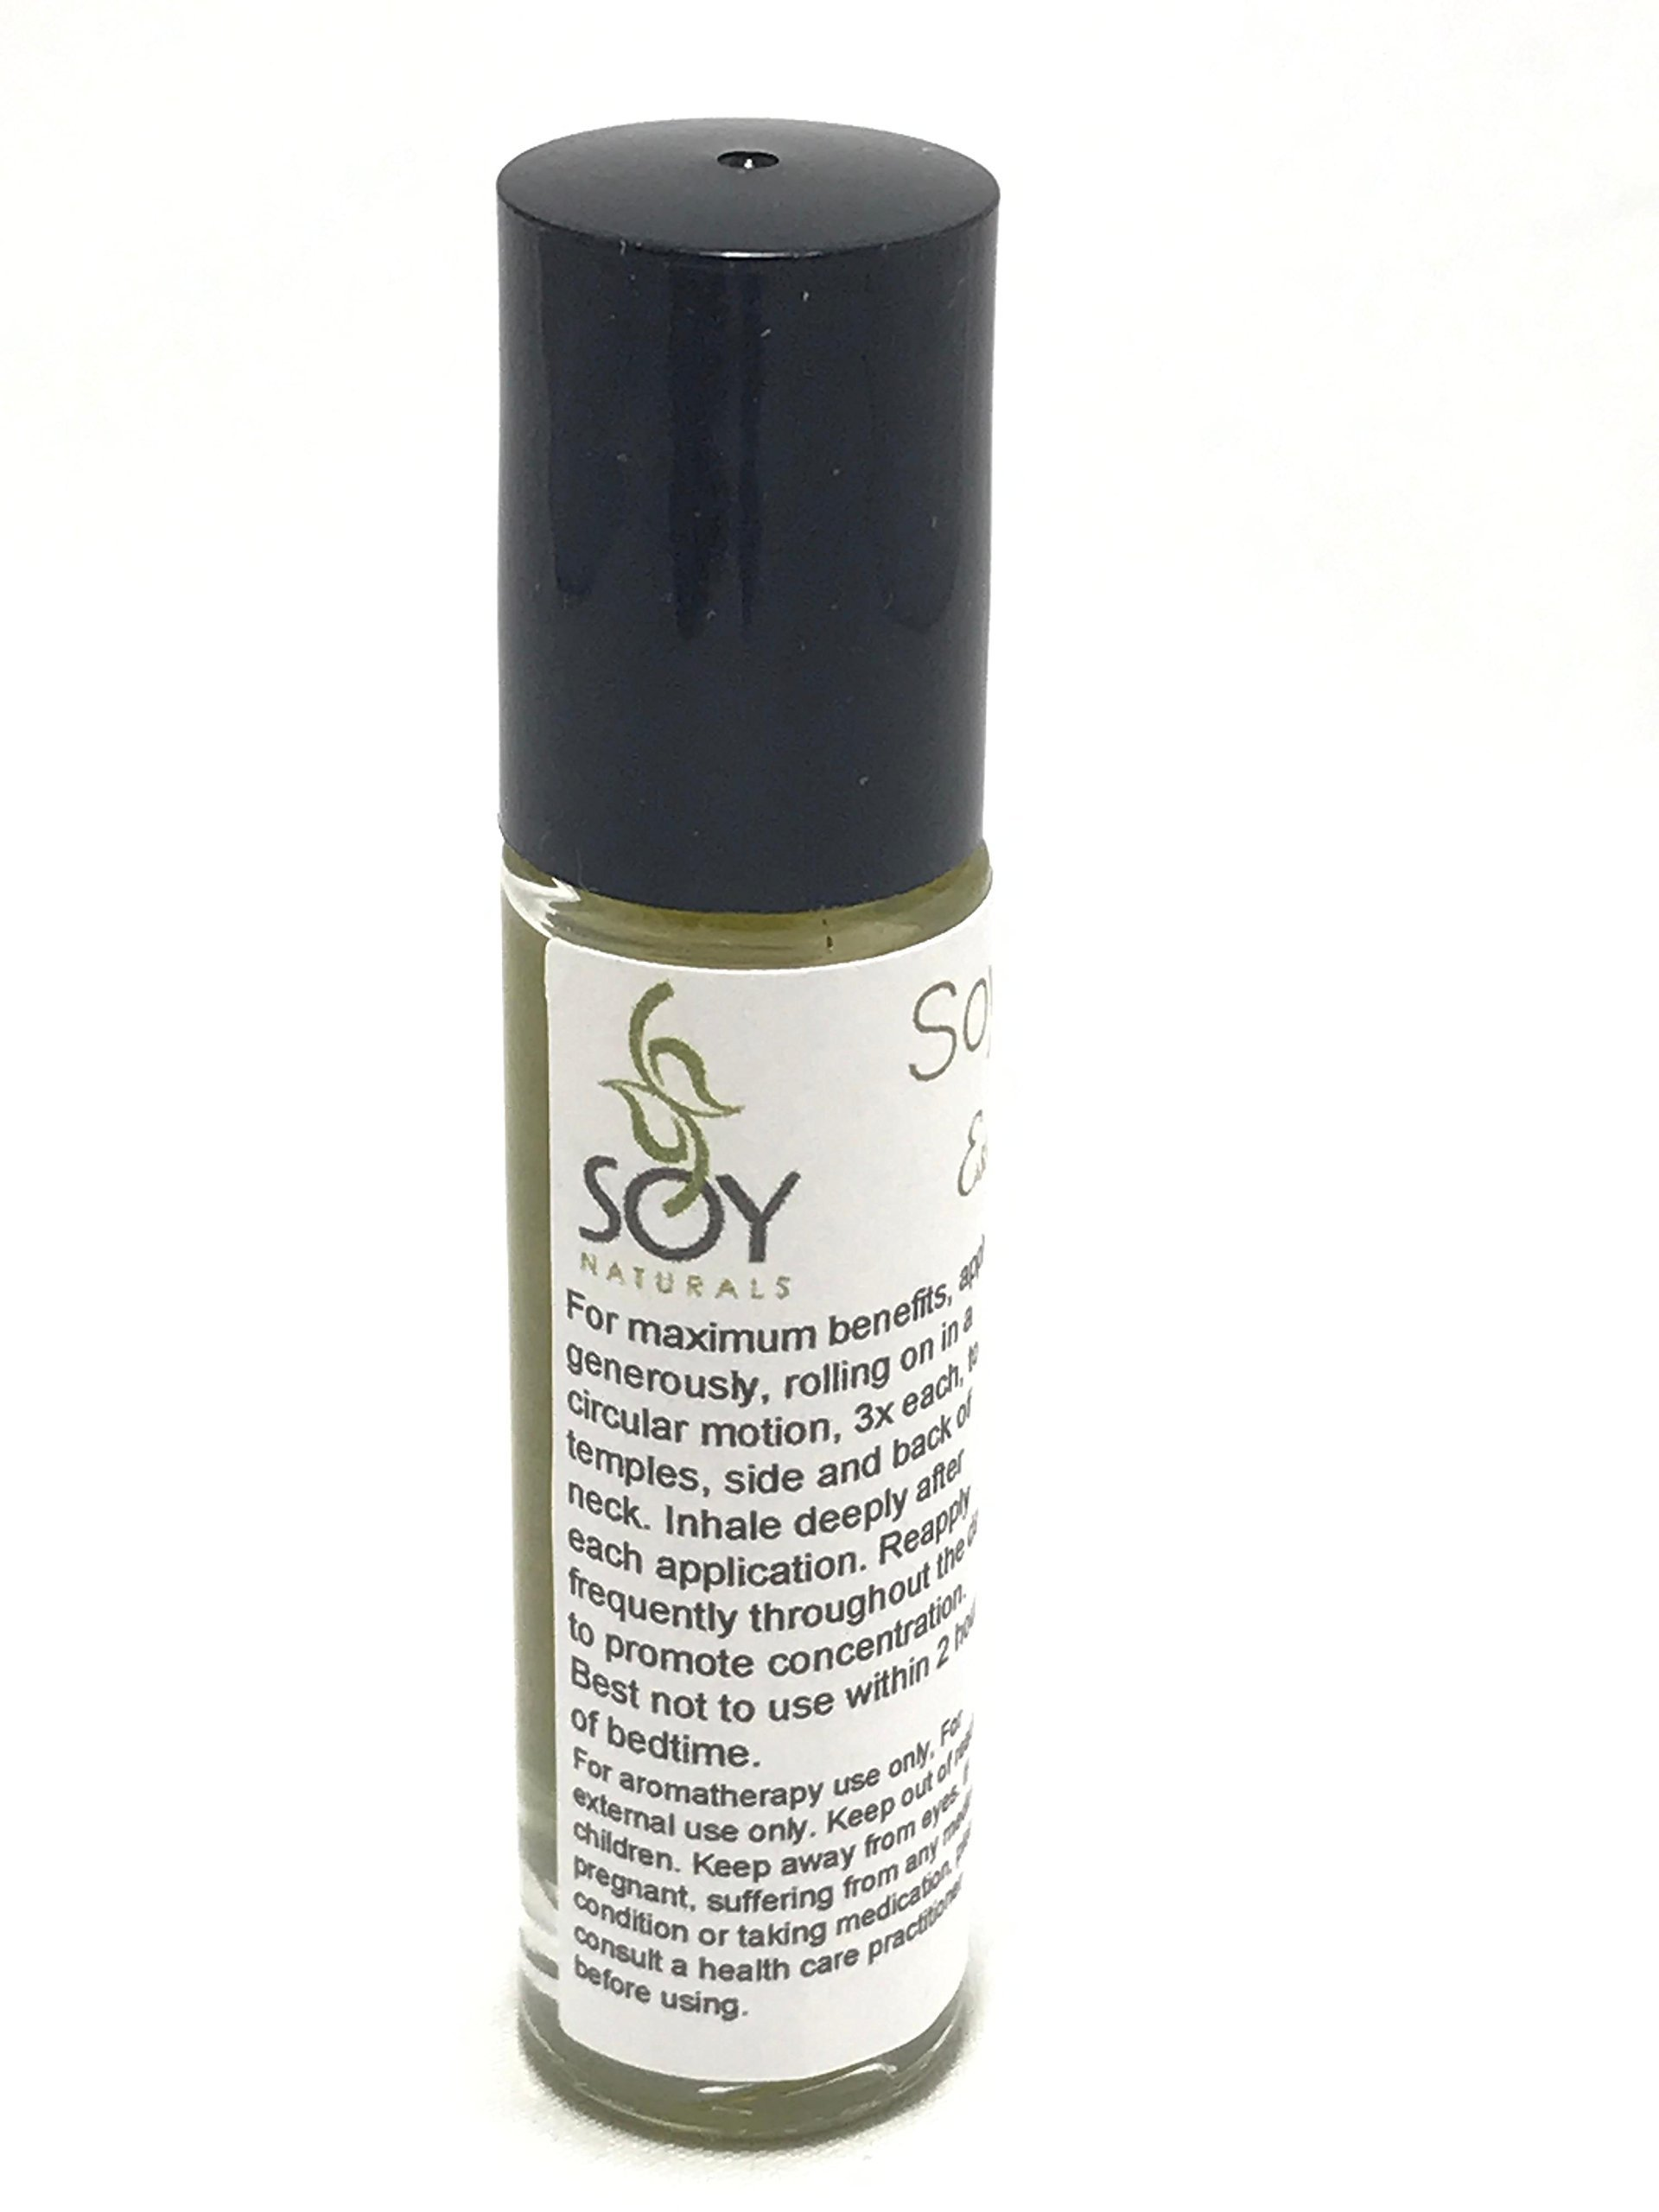 Immune Essential Oil Immunity Boosting Blend, Immune Roll On Blend, 10ml - 1/3oz by Soy Naturals by Soy Naturals Aromatherapy